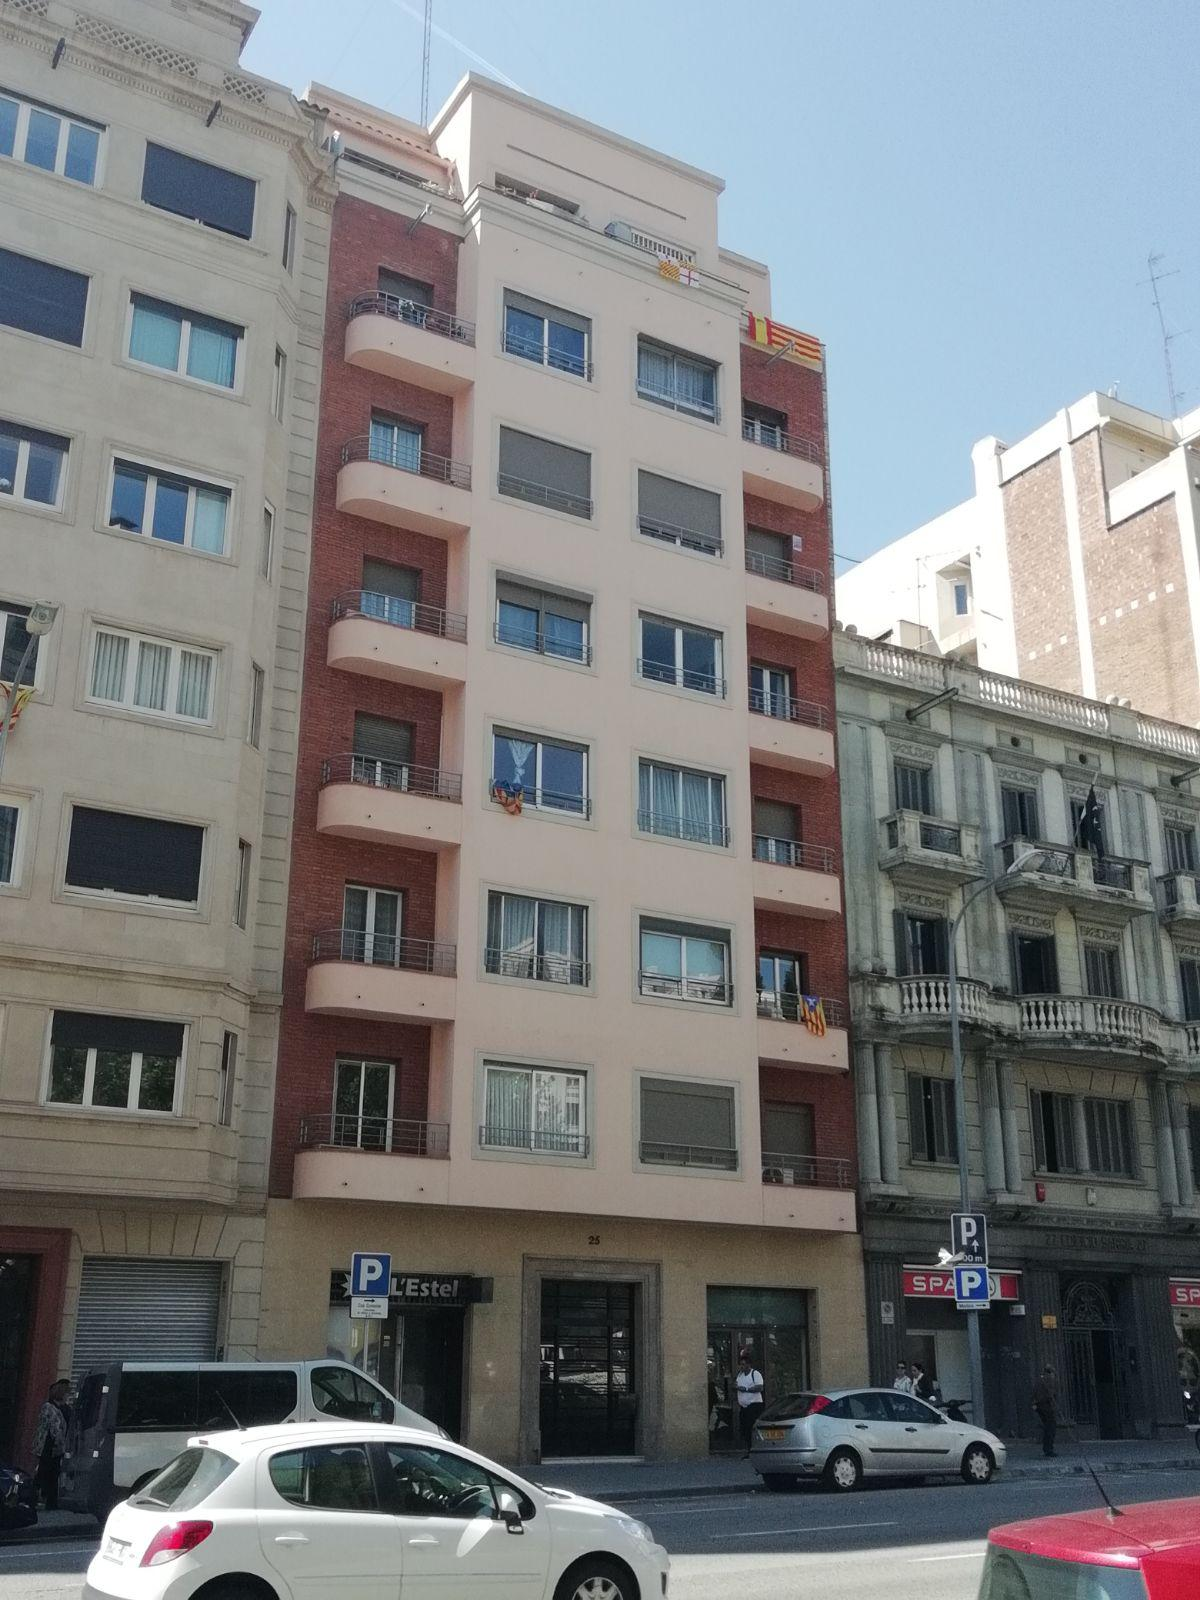 206142 Apartment for sale in Eixample, Old Left Eixample 1